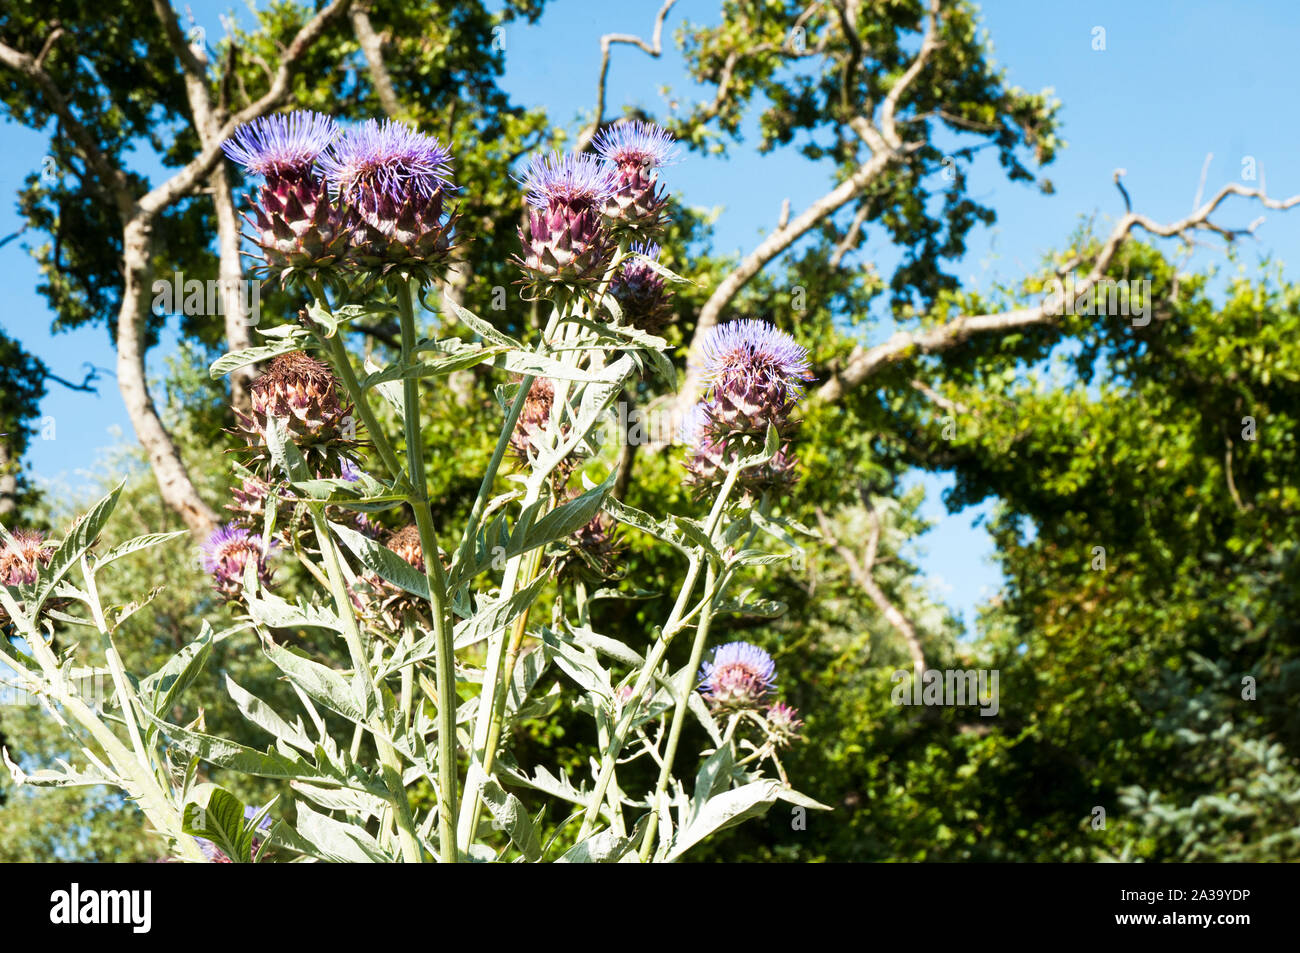 Cynrar Cardunculus Cardoon Other Names Are Artichoke Thistle And